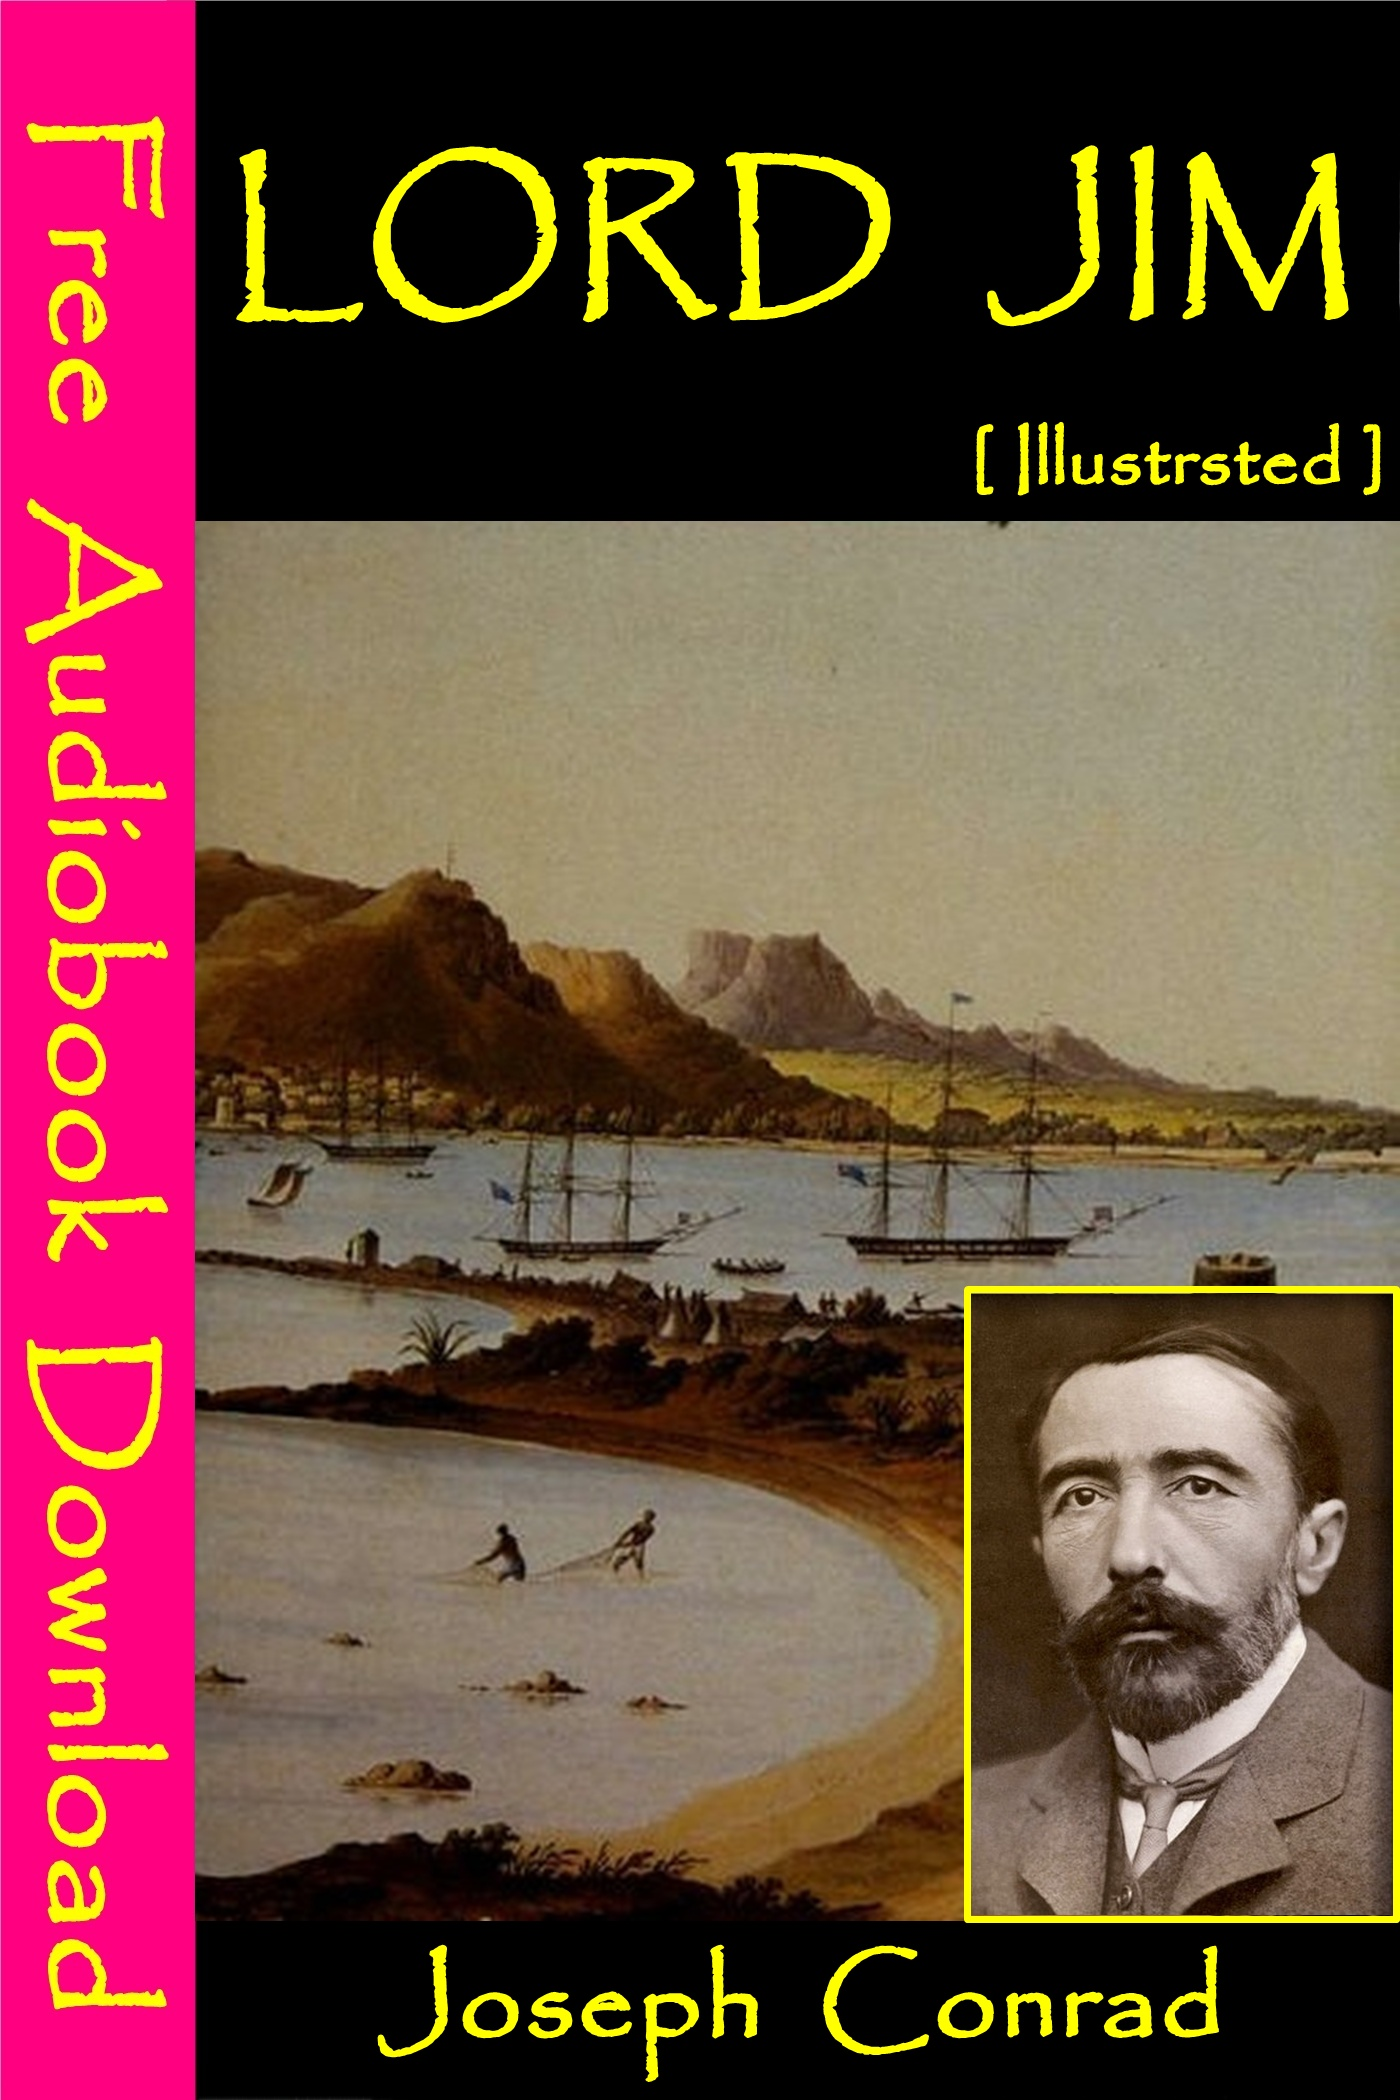 Joseph Conrad - Lord Jim [ Illustrated ]